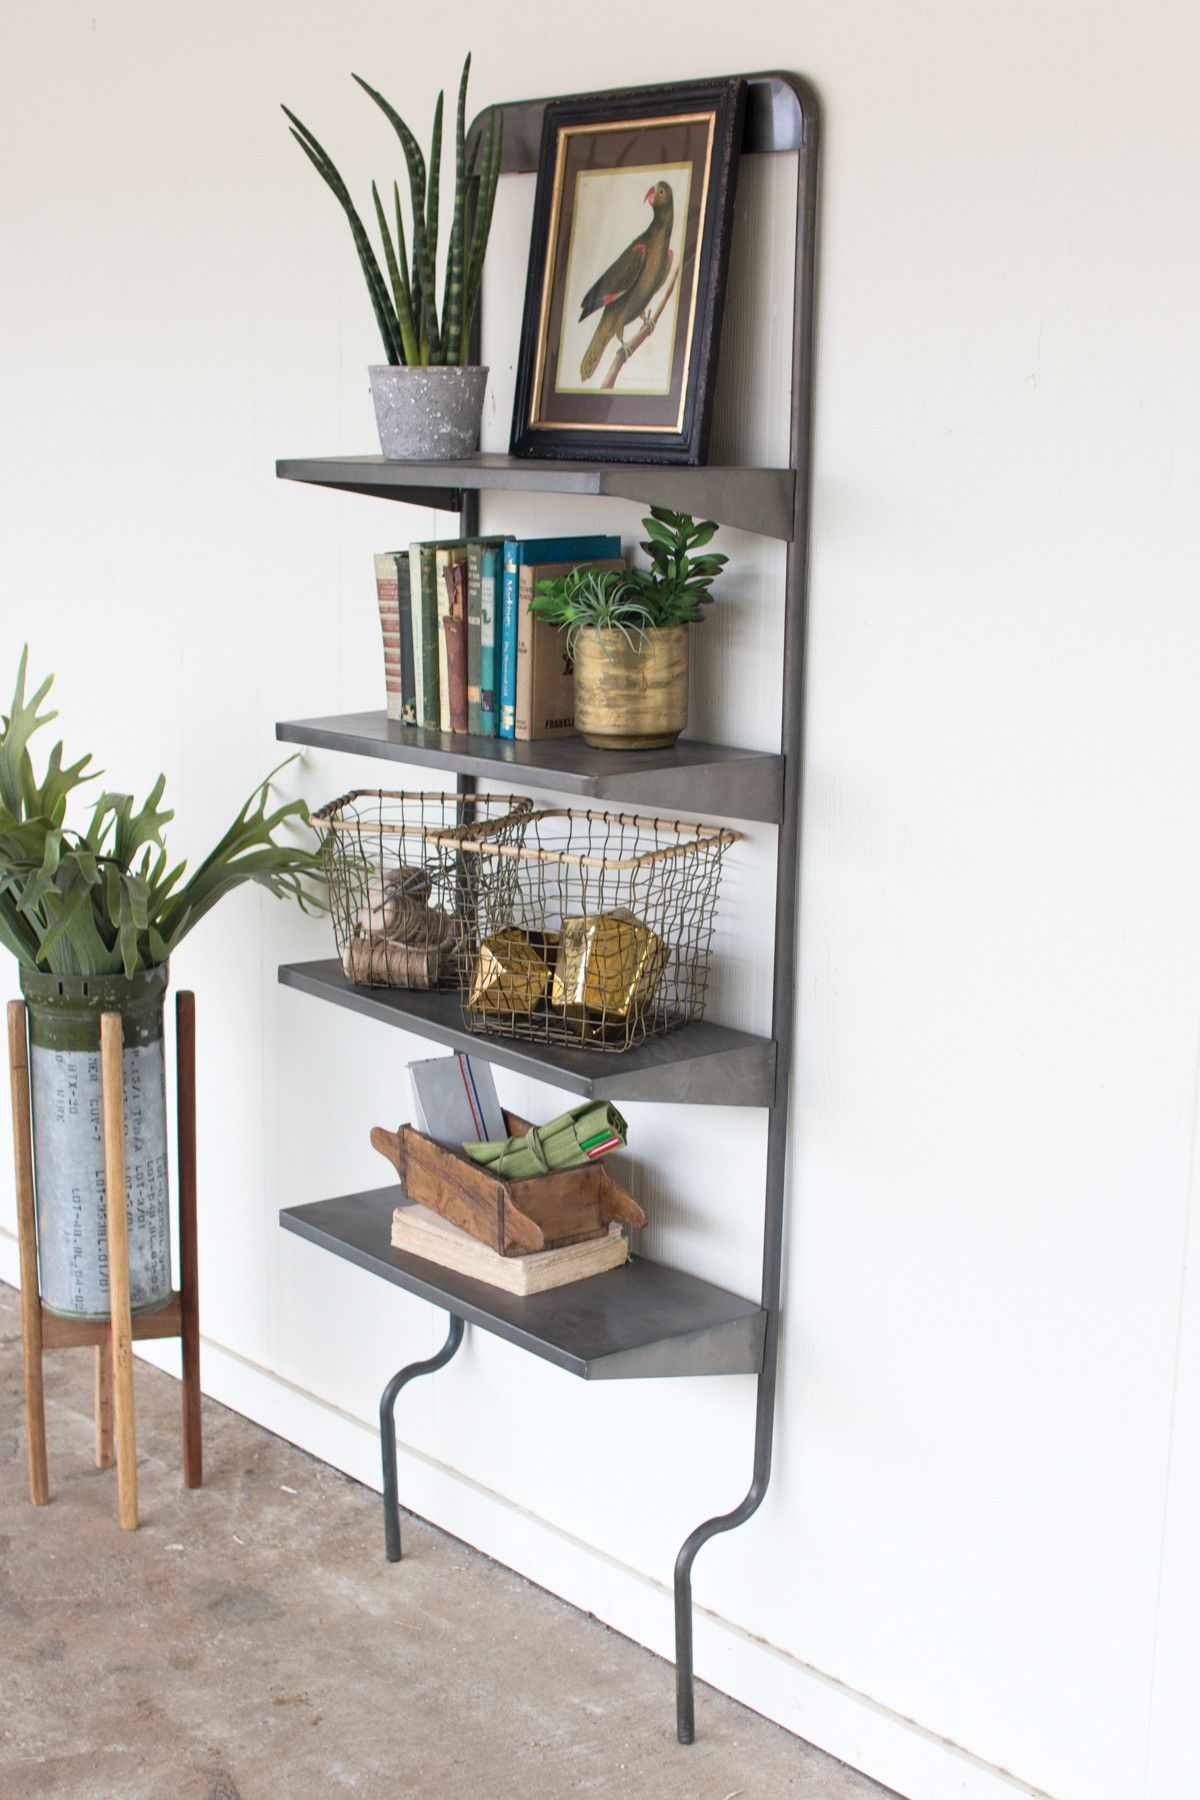 Funky metal wall shelf products pinterest metal walls and kalalou metal wall shelf proof that youve been overlooking the hardware store as a source of home dcor inspiration for way too long amipublicfo Images